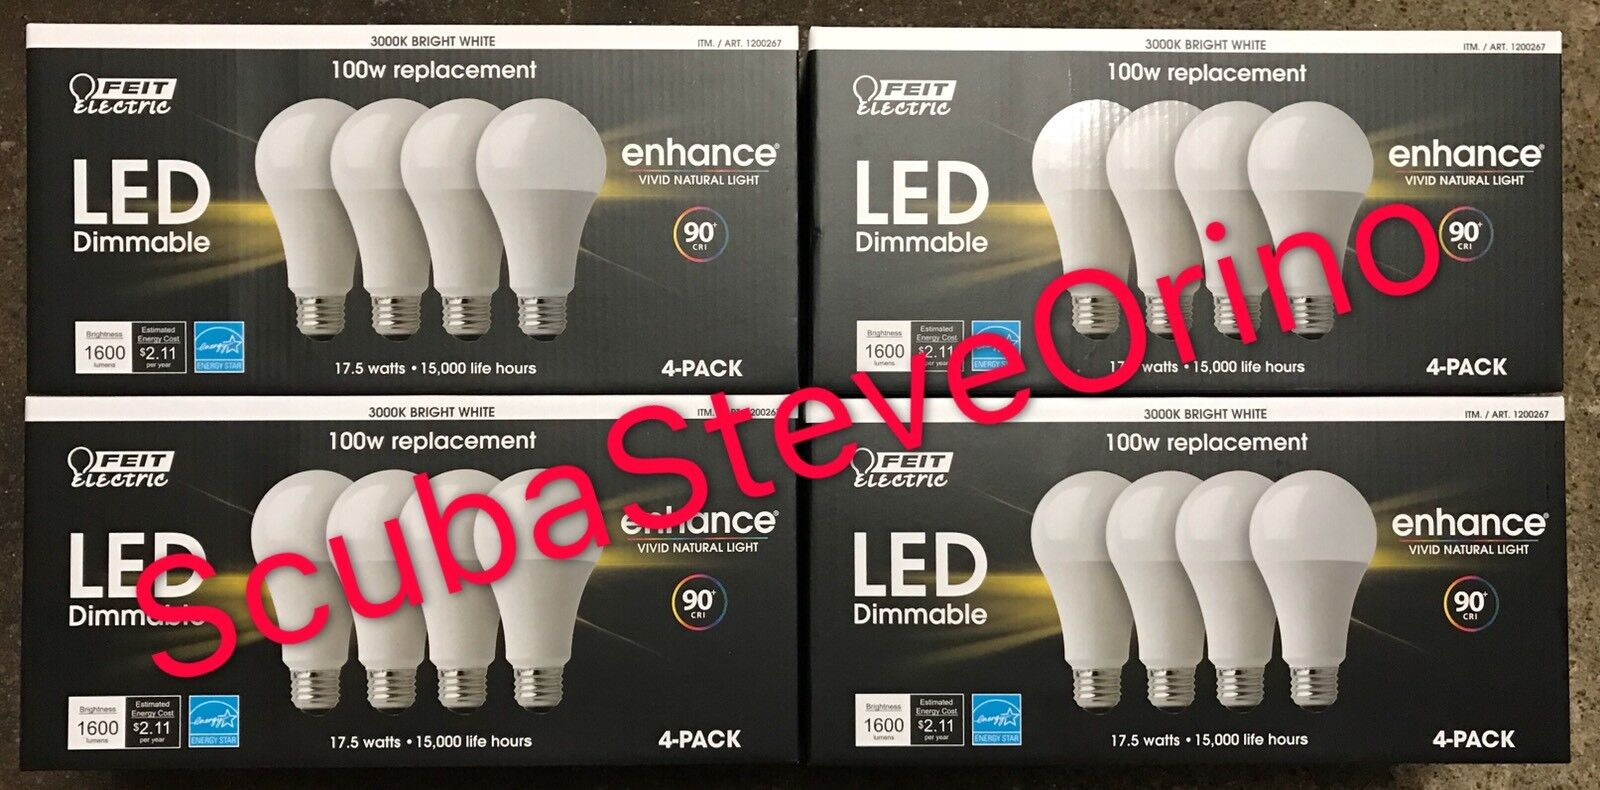 16 x FEIT Electric LED Bulbs 3000K Bright White Dimmable 17.5W = 100W E26